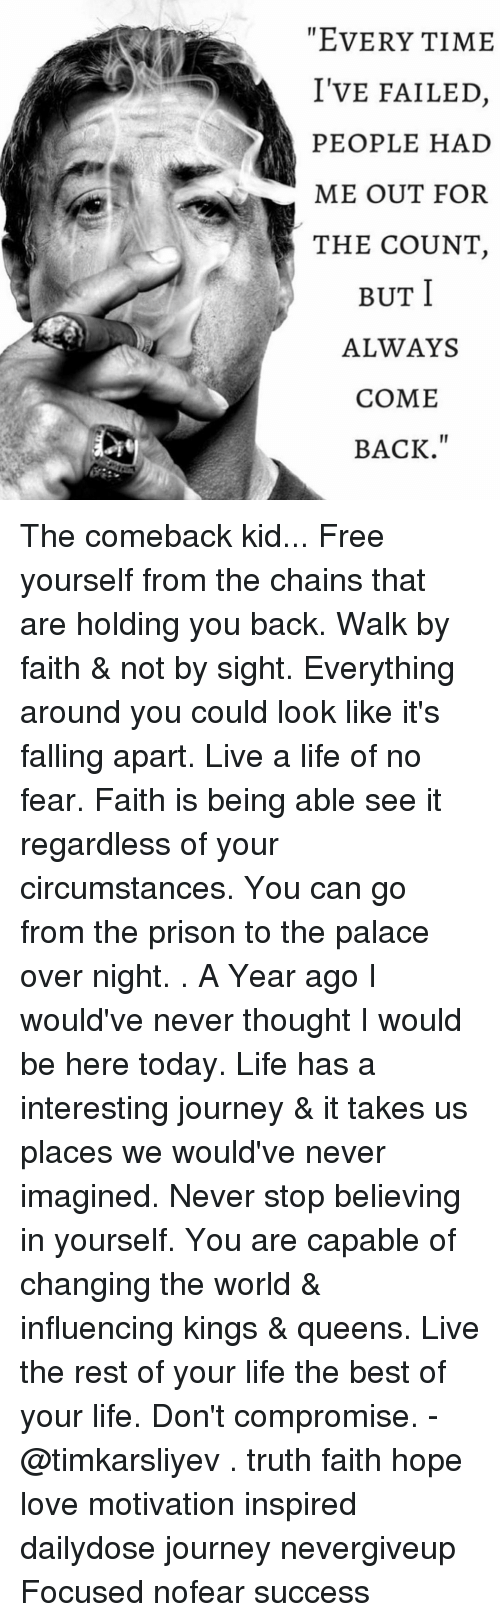 Journey, Memes, and Queen: EVERYTIME  I'VE FAILED  PEOPLE HAD  ME OUT FOR  THE COUNT  I  BUT  ALWAYS  COME  BACK. The comeback kid... Free yourself from the chains that are holding you back. Walk by faith & not by sight. Everything around you could look like it's falling apart. Live a life of no fear. Faith is being able see it regardless of your circumstances. You can go from the prison to the palace over night. . A Year ago I would've never thought I would be here today. Life has a interesting journey & it takes us places we would've never imagined. Never stop believing in yourself. You are capable of changing the world & influencing kings & queens. Live the rest of your life the best of your life. Don't compromise. - @timkarsliyev . truth faith hope love motivation inspired dailydose journey nevergiveup Focused nofear success